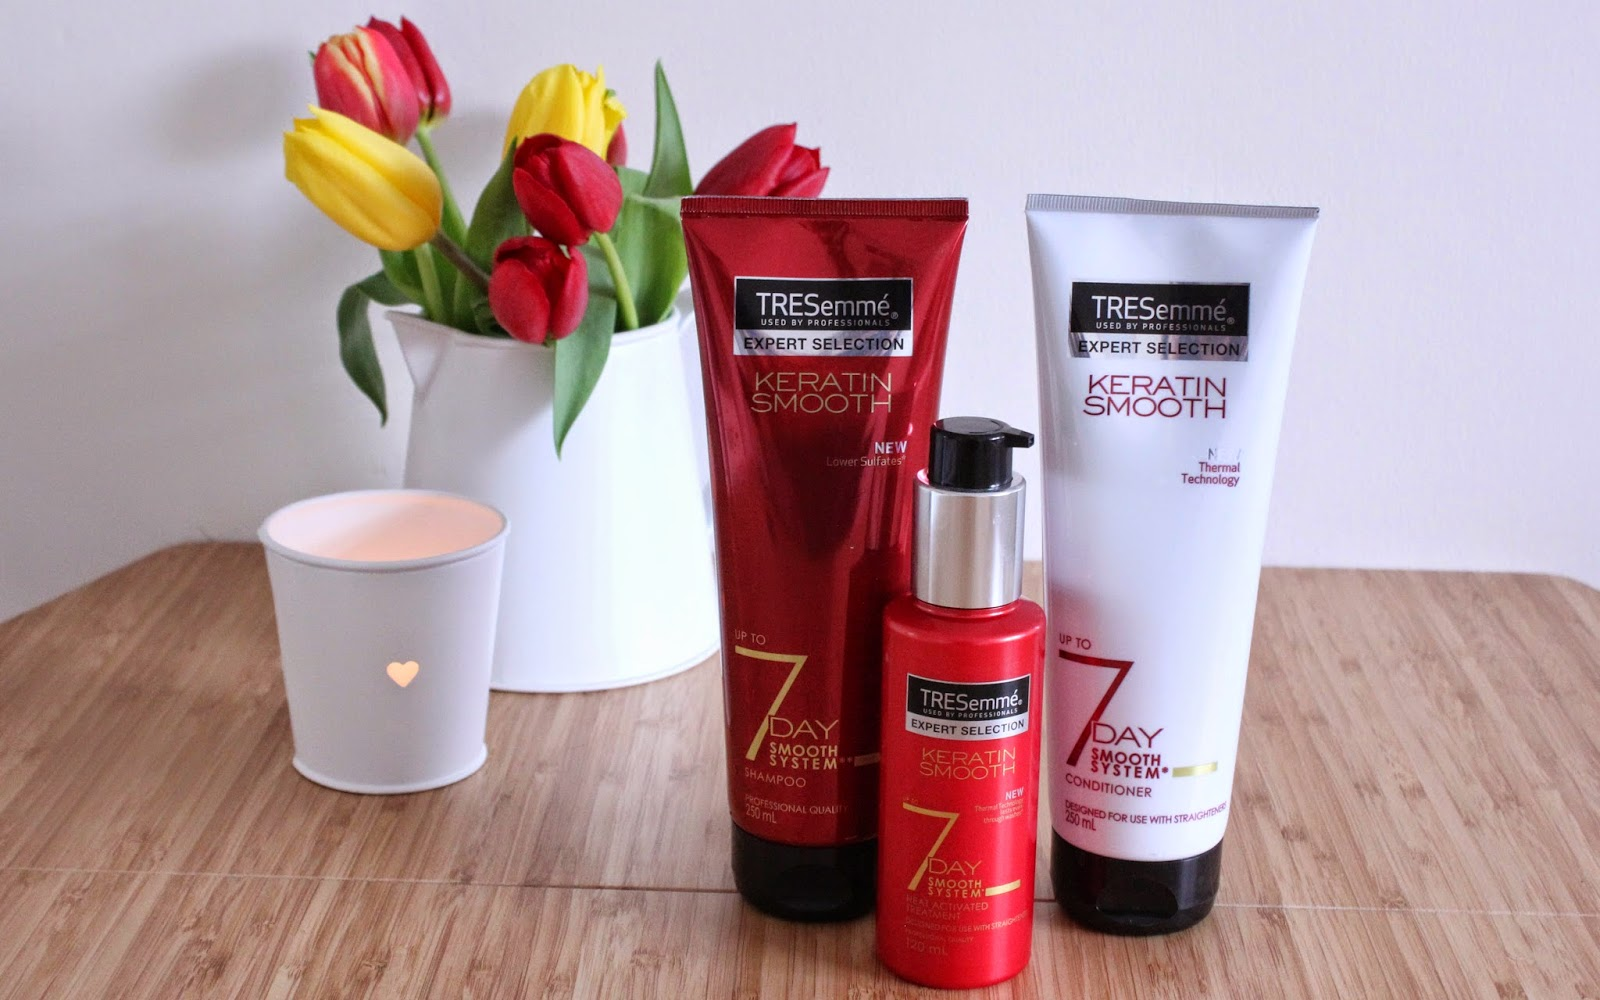 Tresemme Keratin Smooth Collection Review